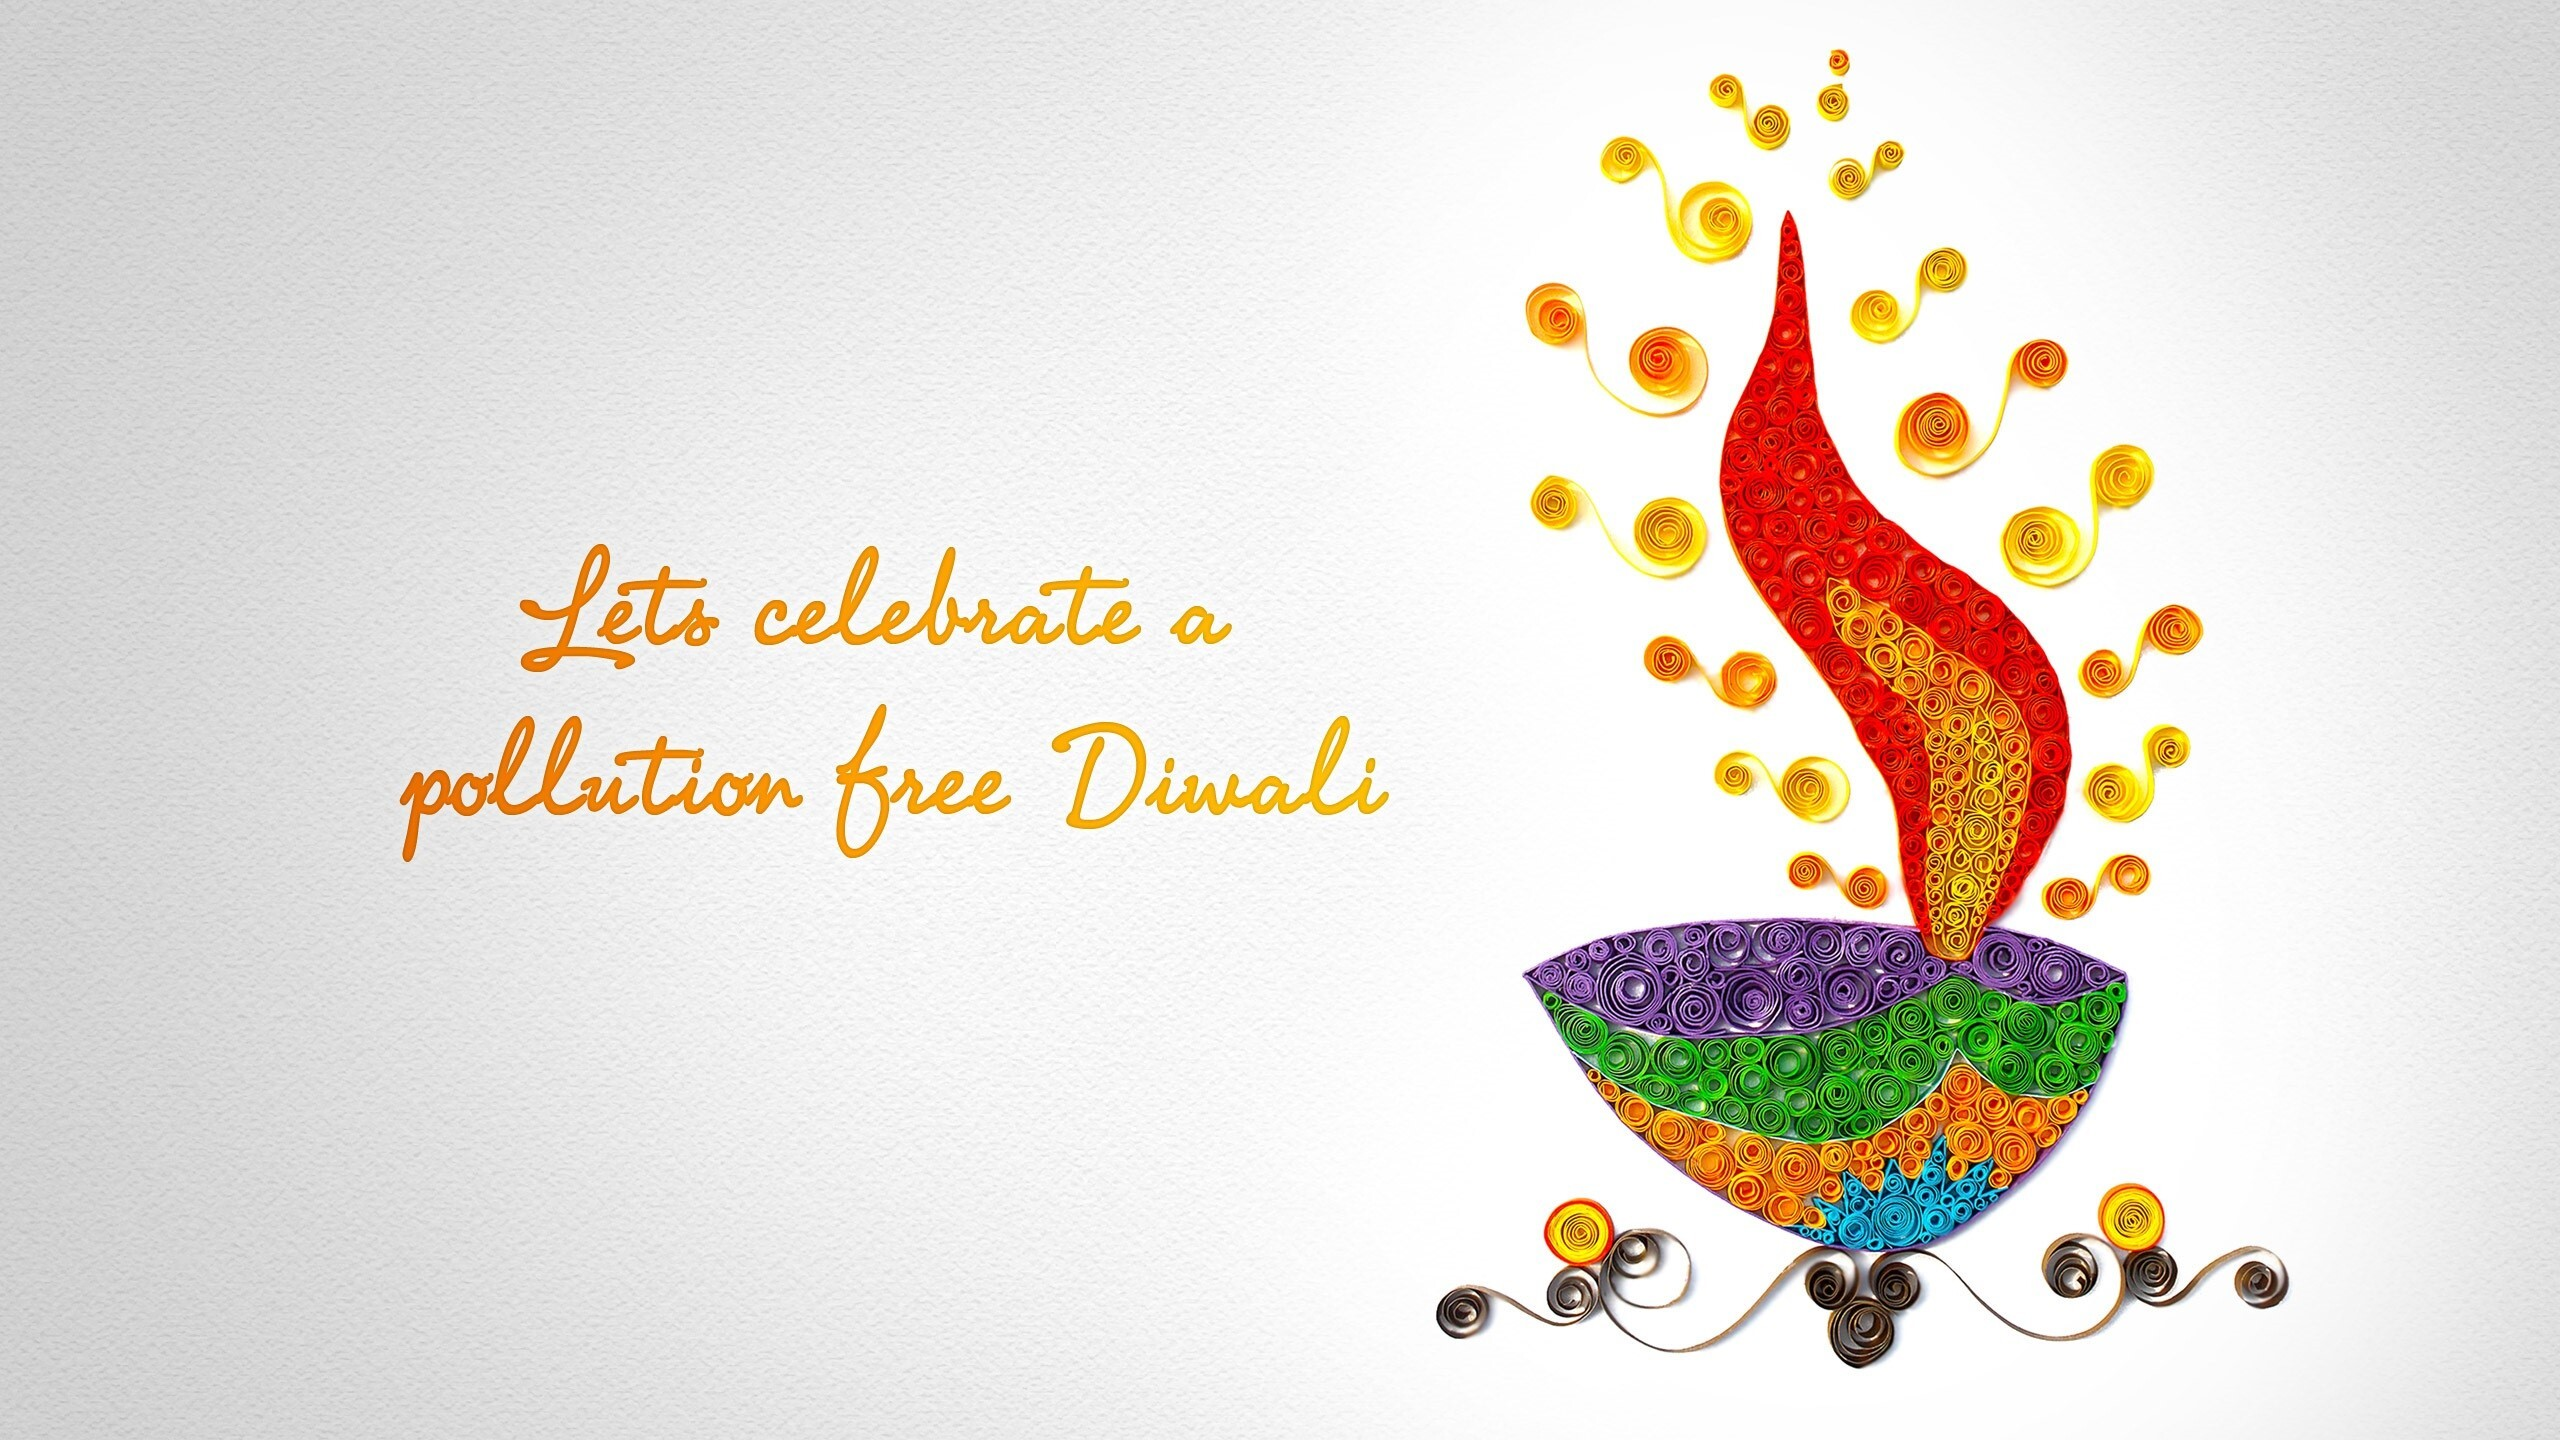 Lets Celebrate Pollution Free Diwali In India Wallpapers